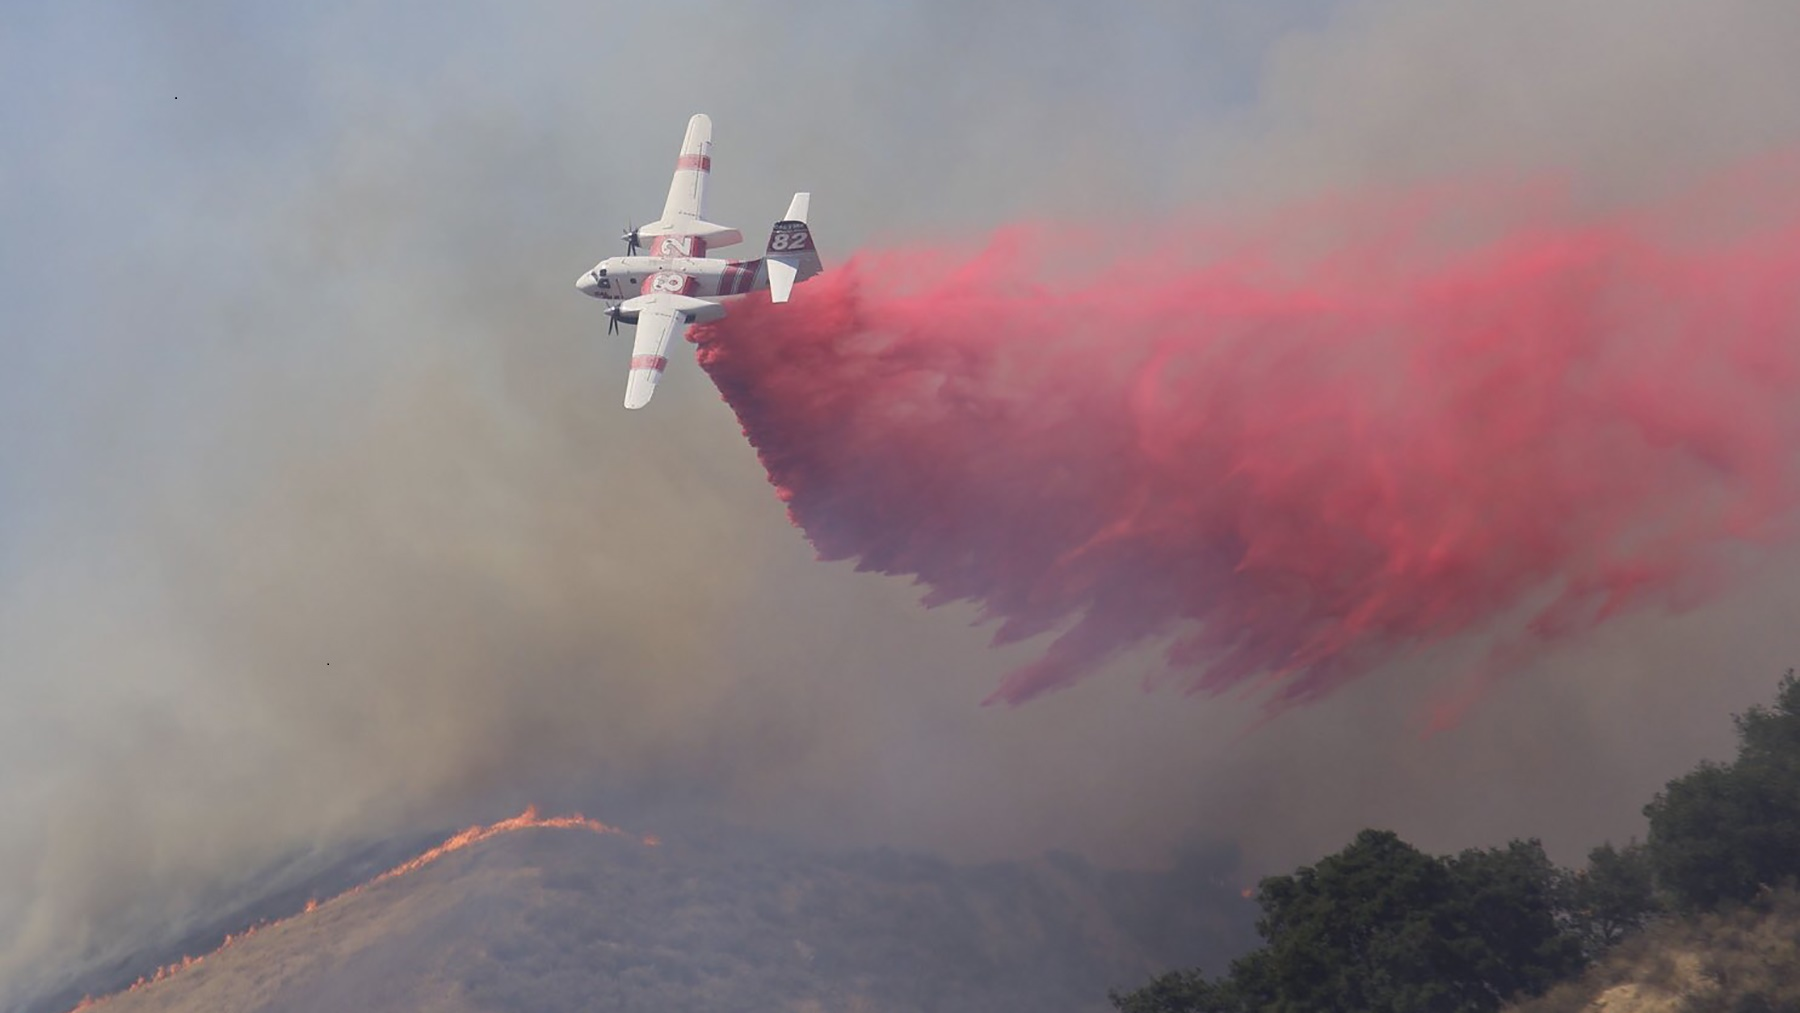 A CALFire air tanker drops fire retardant on the Crews Fire east of Gilroy, California, on July 5, 2020. (Photo by Jaden Schaul)